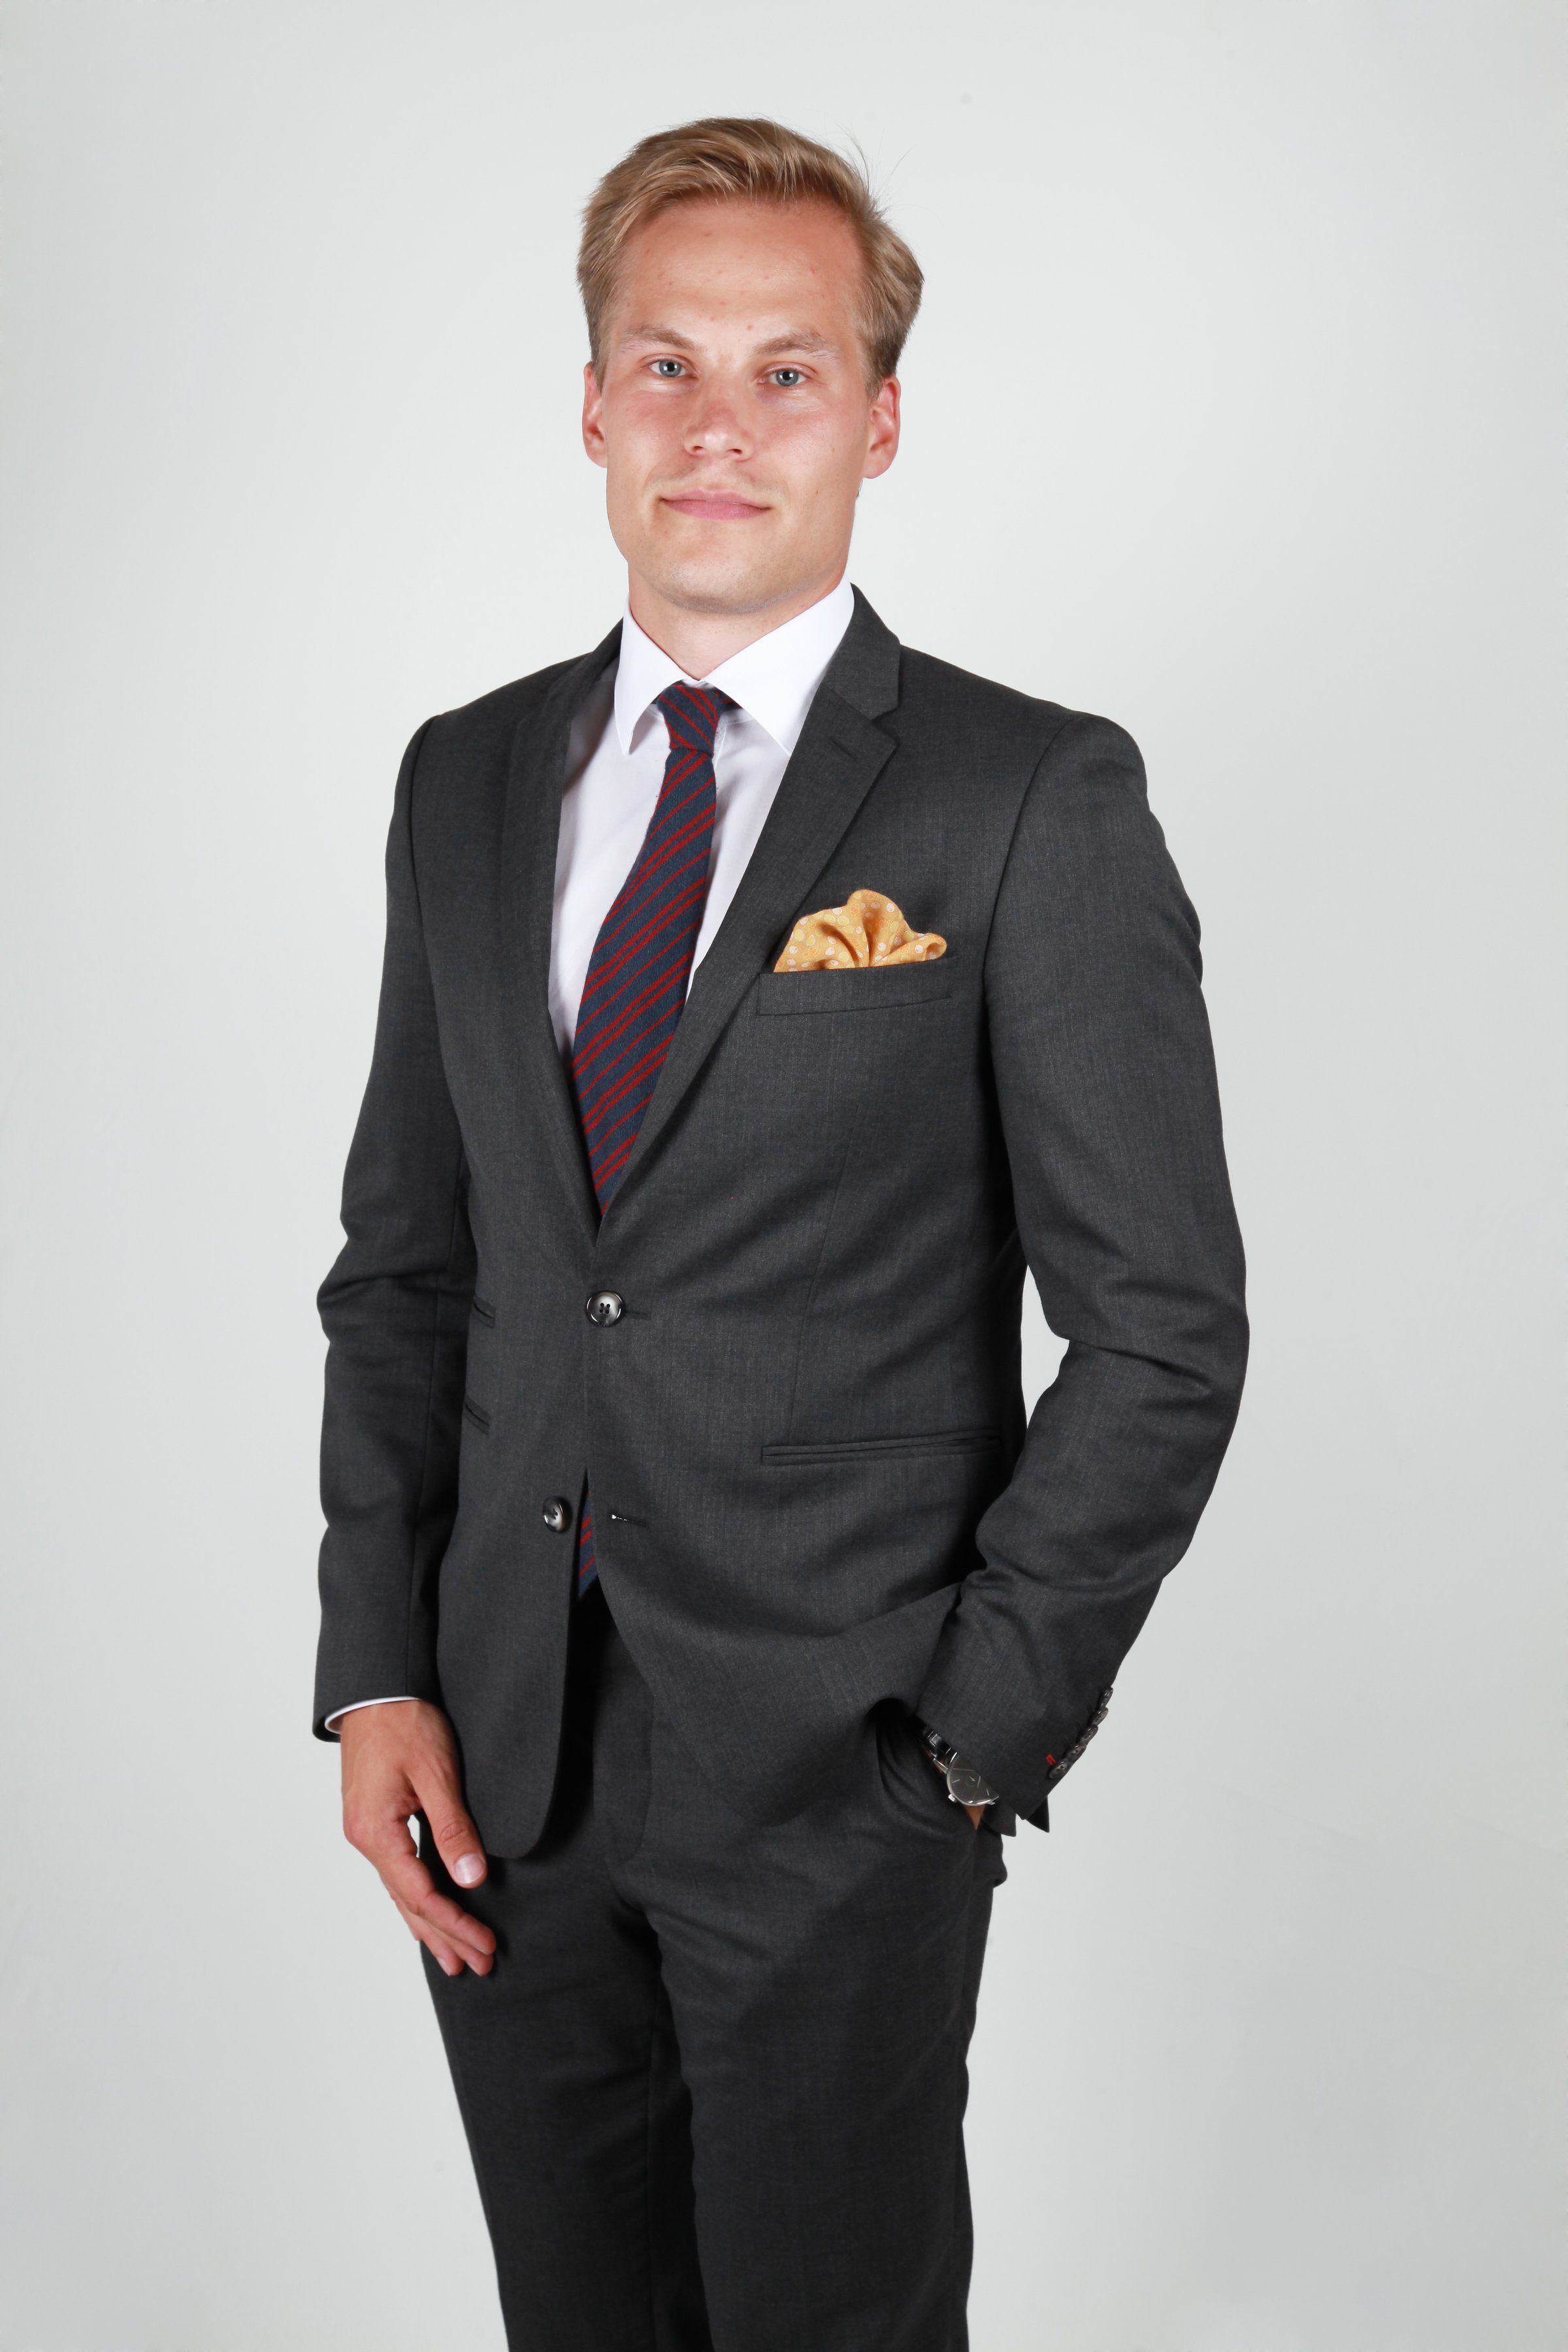 Lawyer Roope Raunio